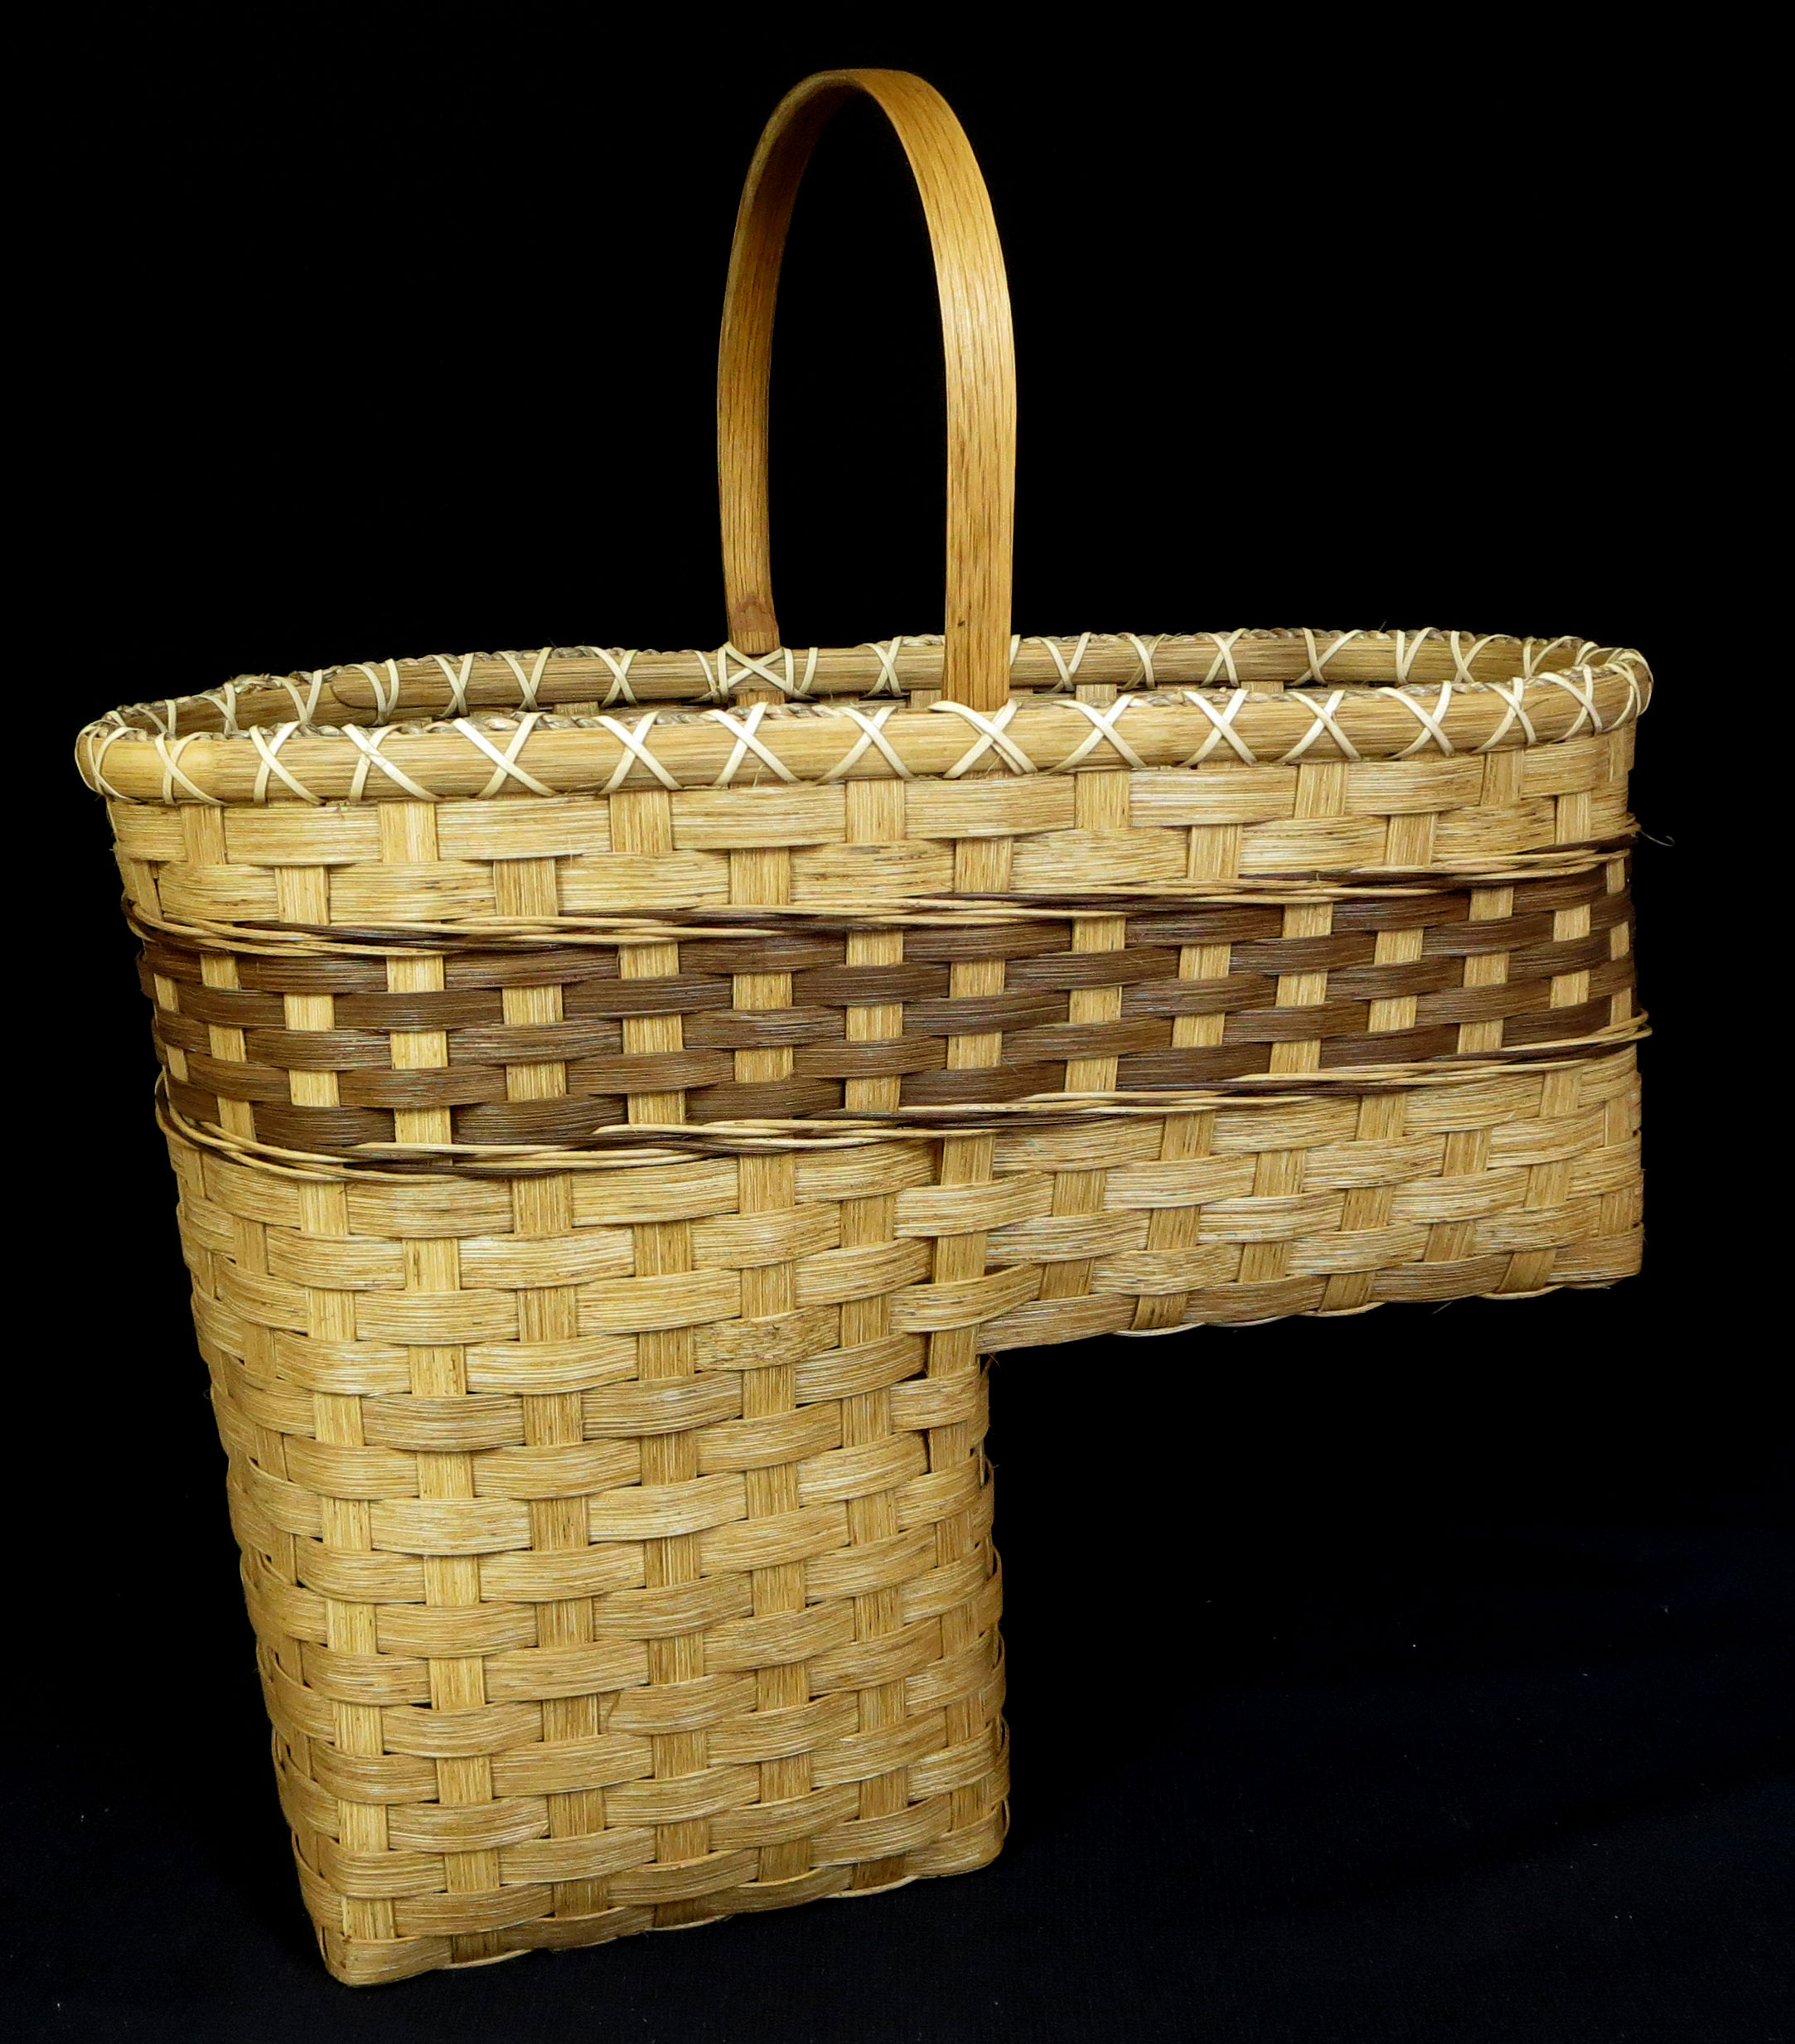 Countryside Basketry